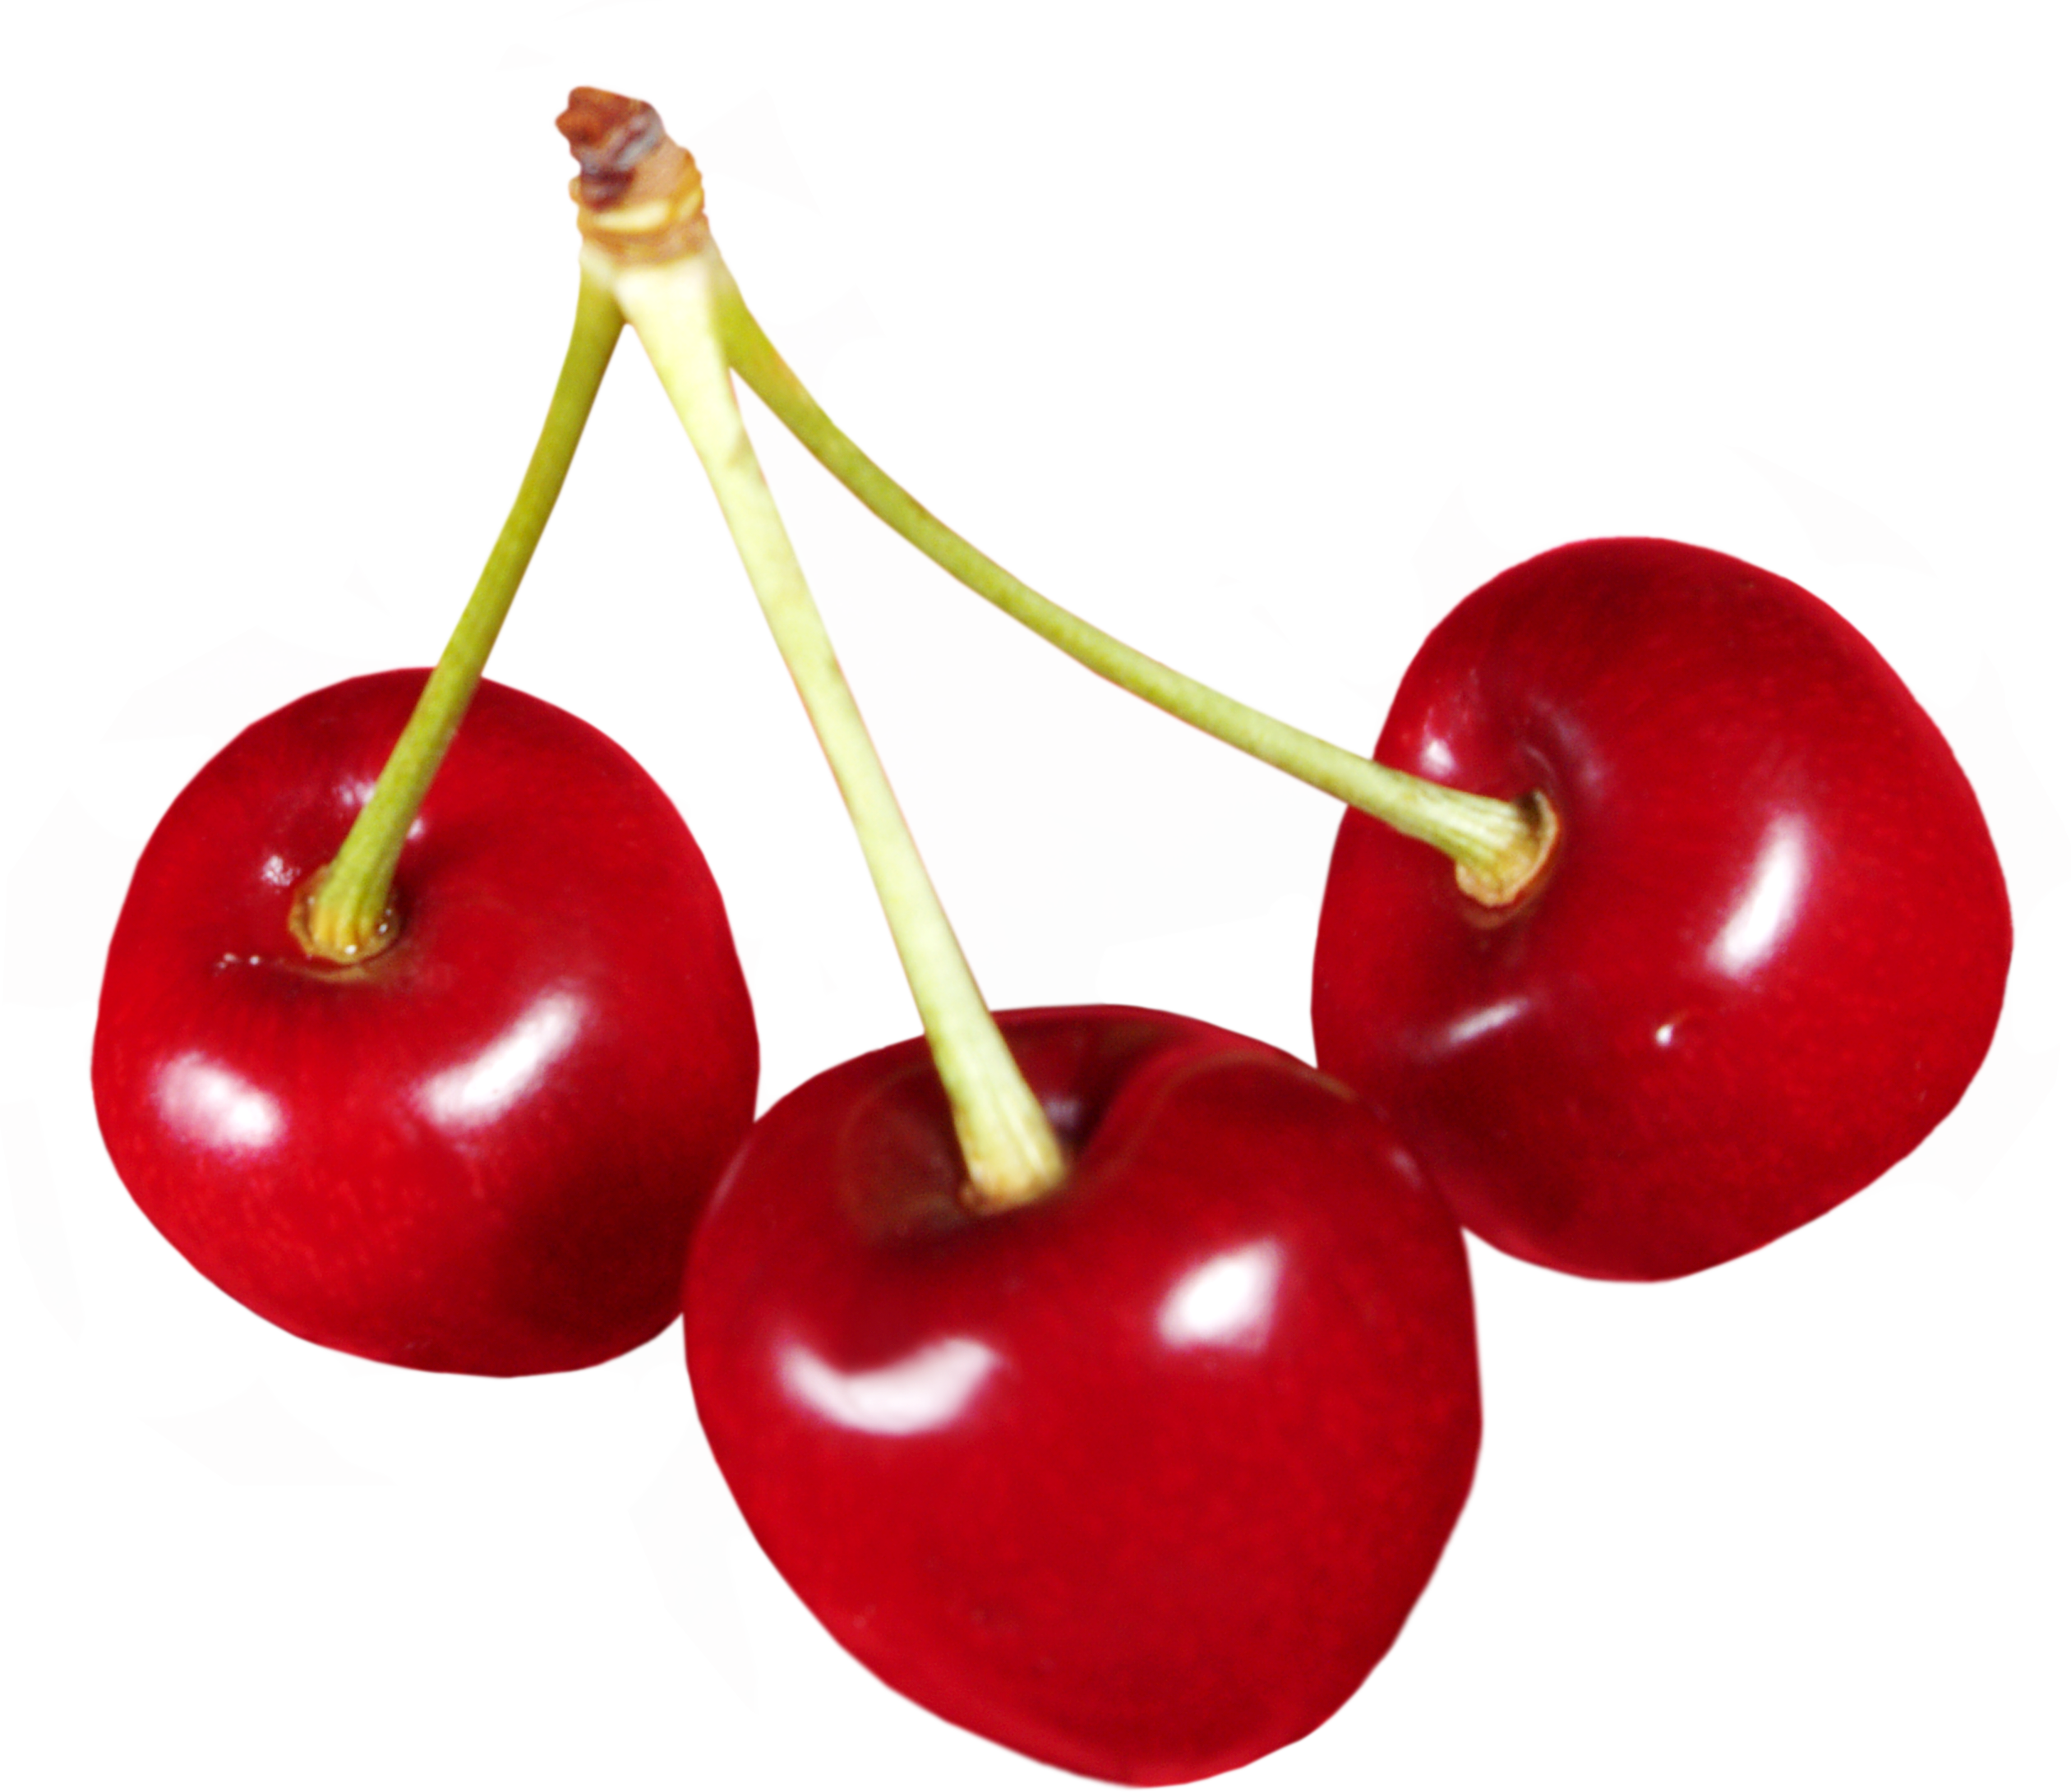 cherries PNG image - Cherry PNG